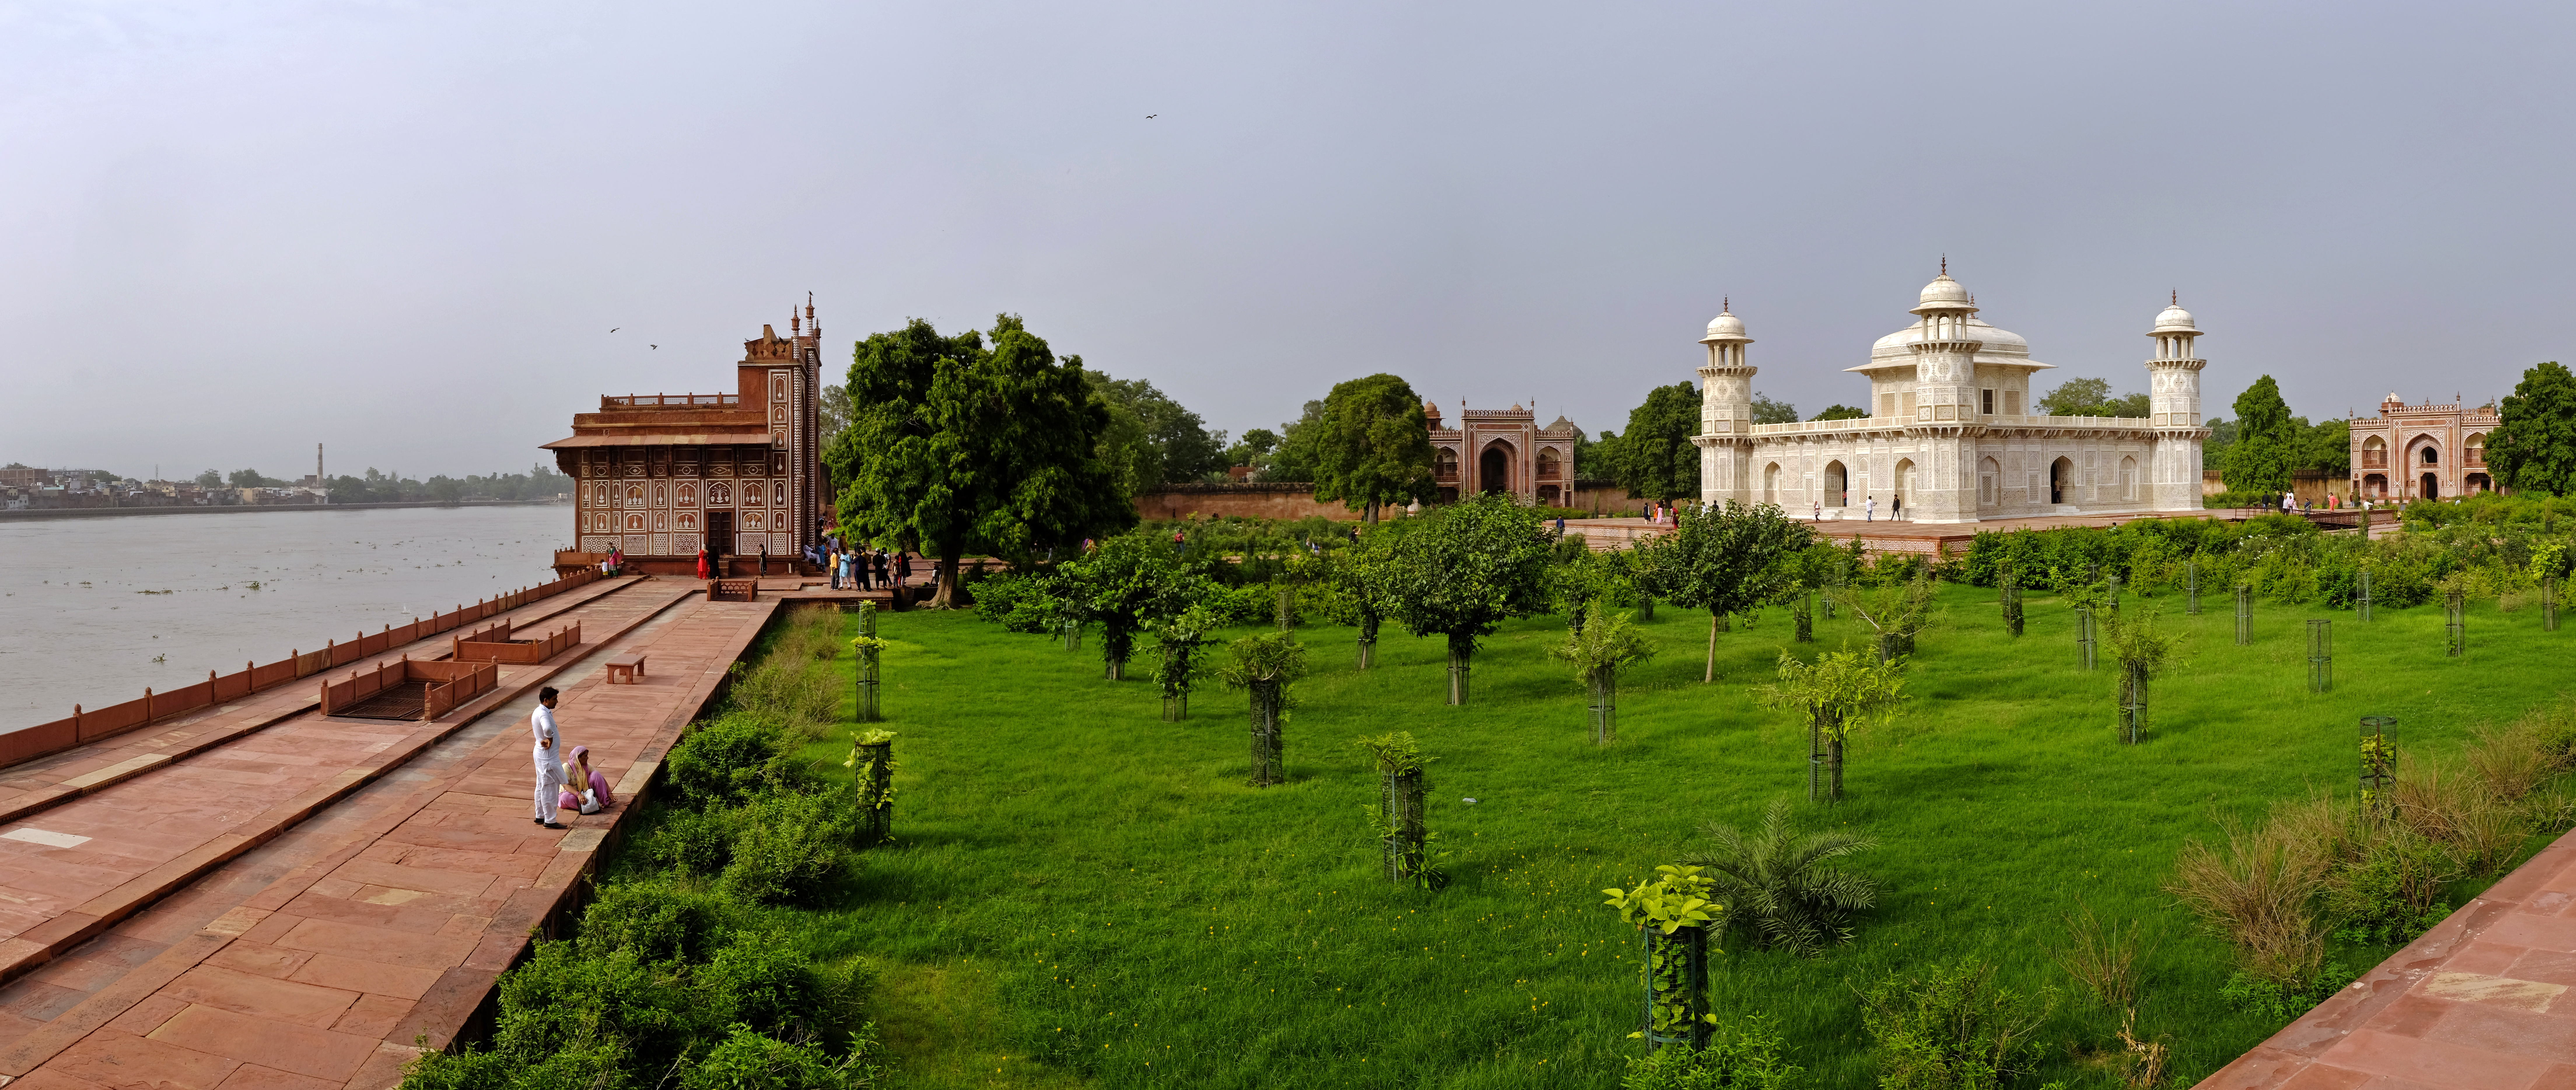 The Garden of the Tomb of I'timad-ud-Daulah as seen along the Yamuna riverfront.